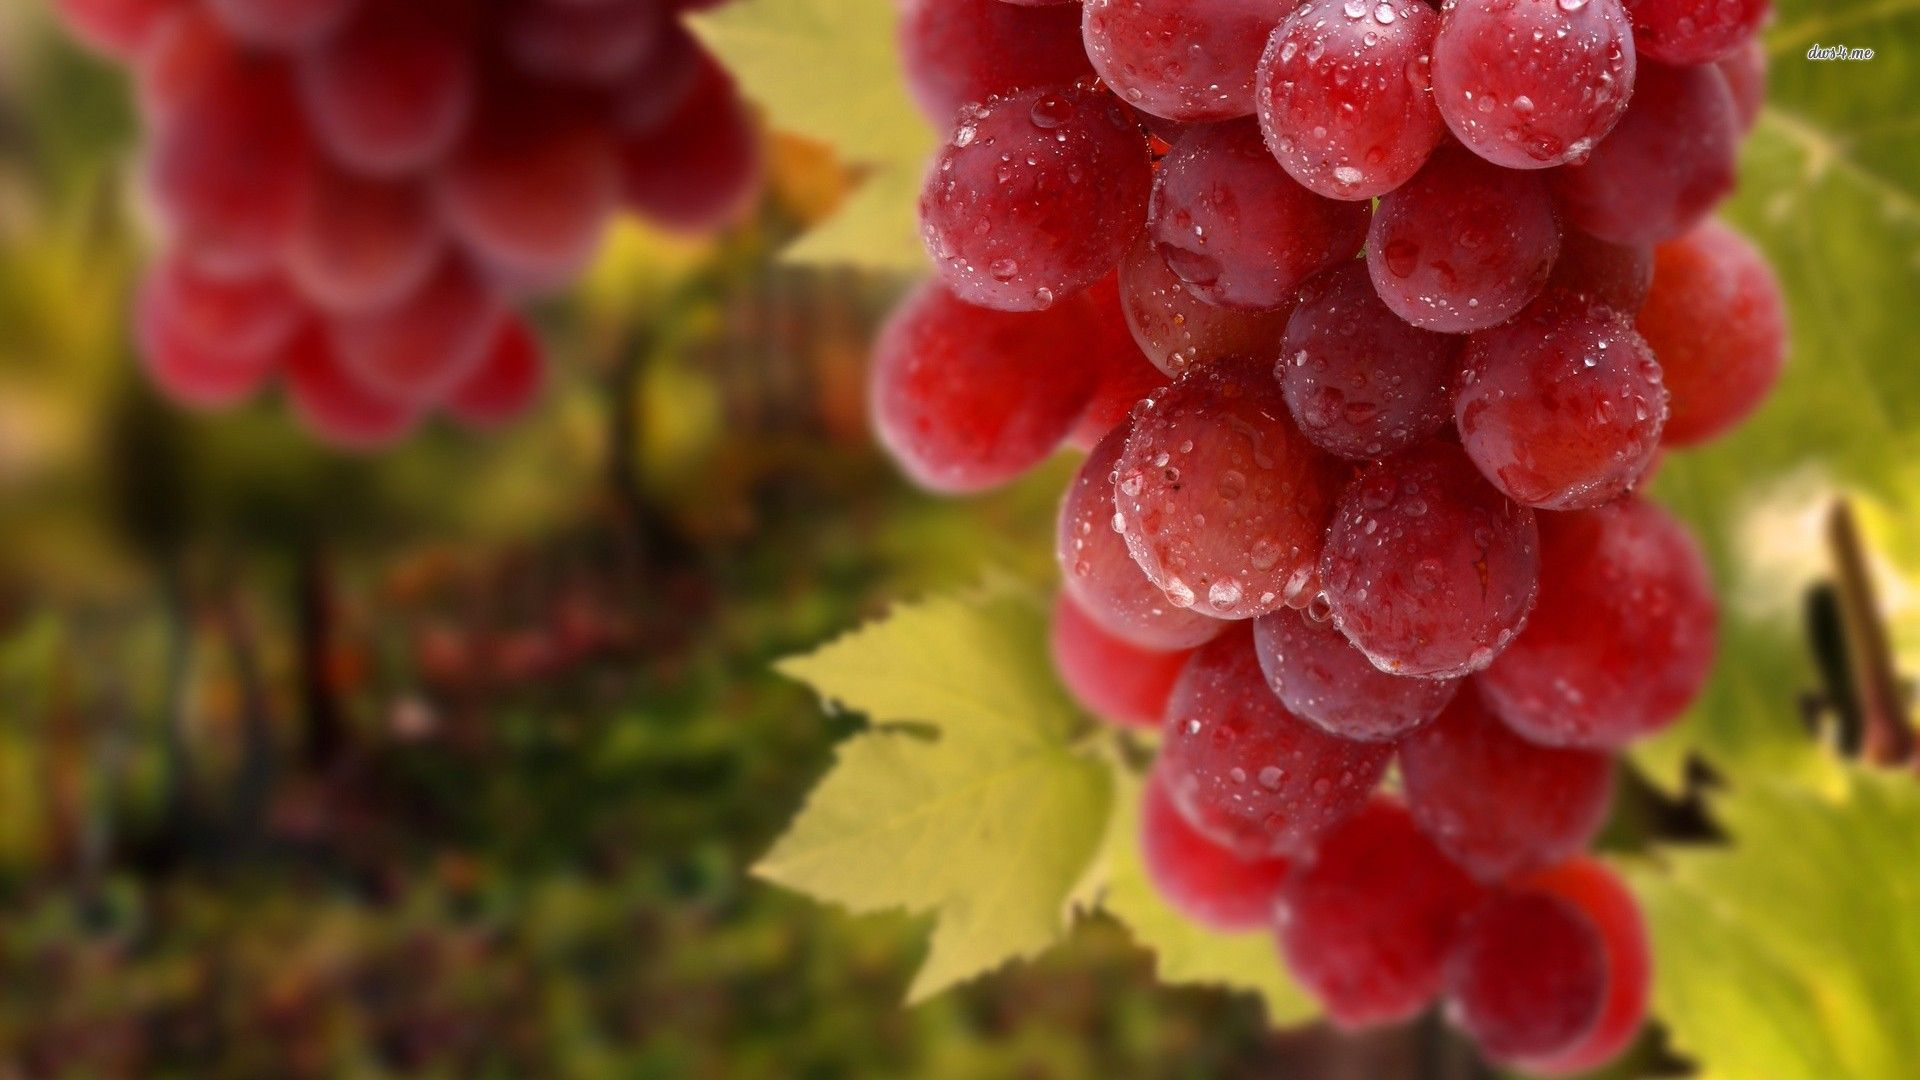 Grapes Hd Desktop Background Wallpapers Hd Free 522119 Grapes Fruit Grape Wallpaper